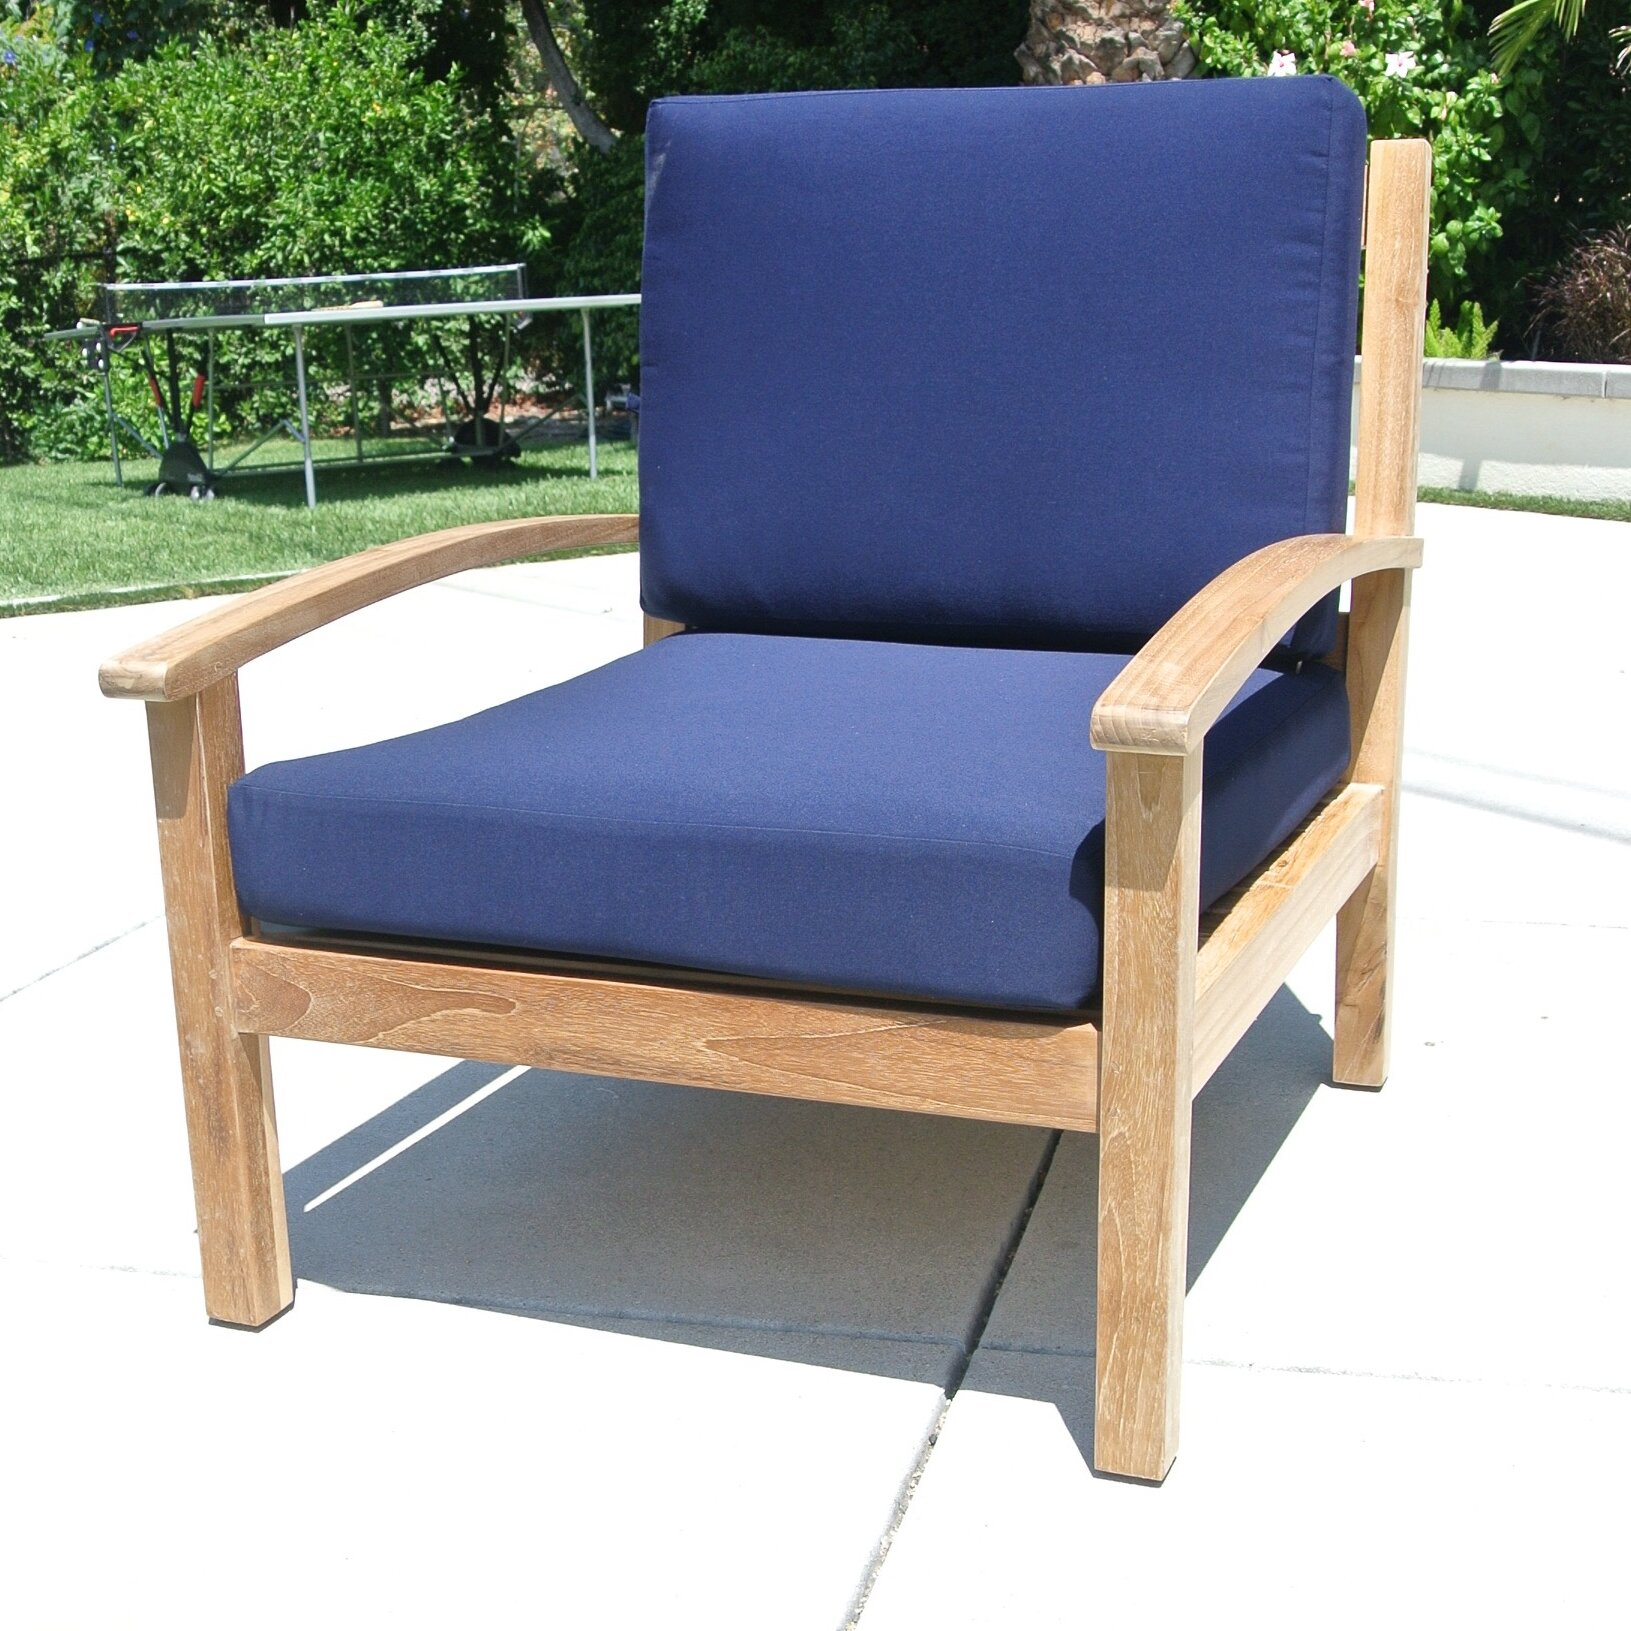 Willow creek designs outdoor sunbrella lounge chair for Willow creek designs